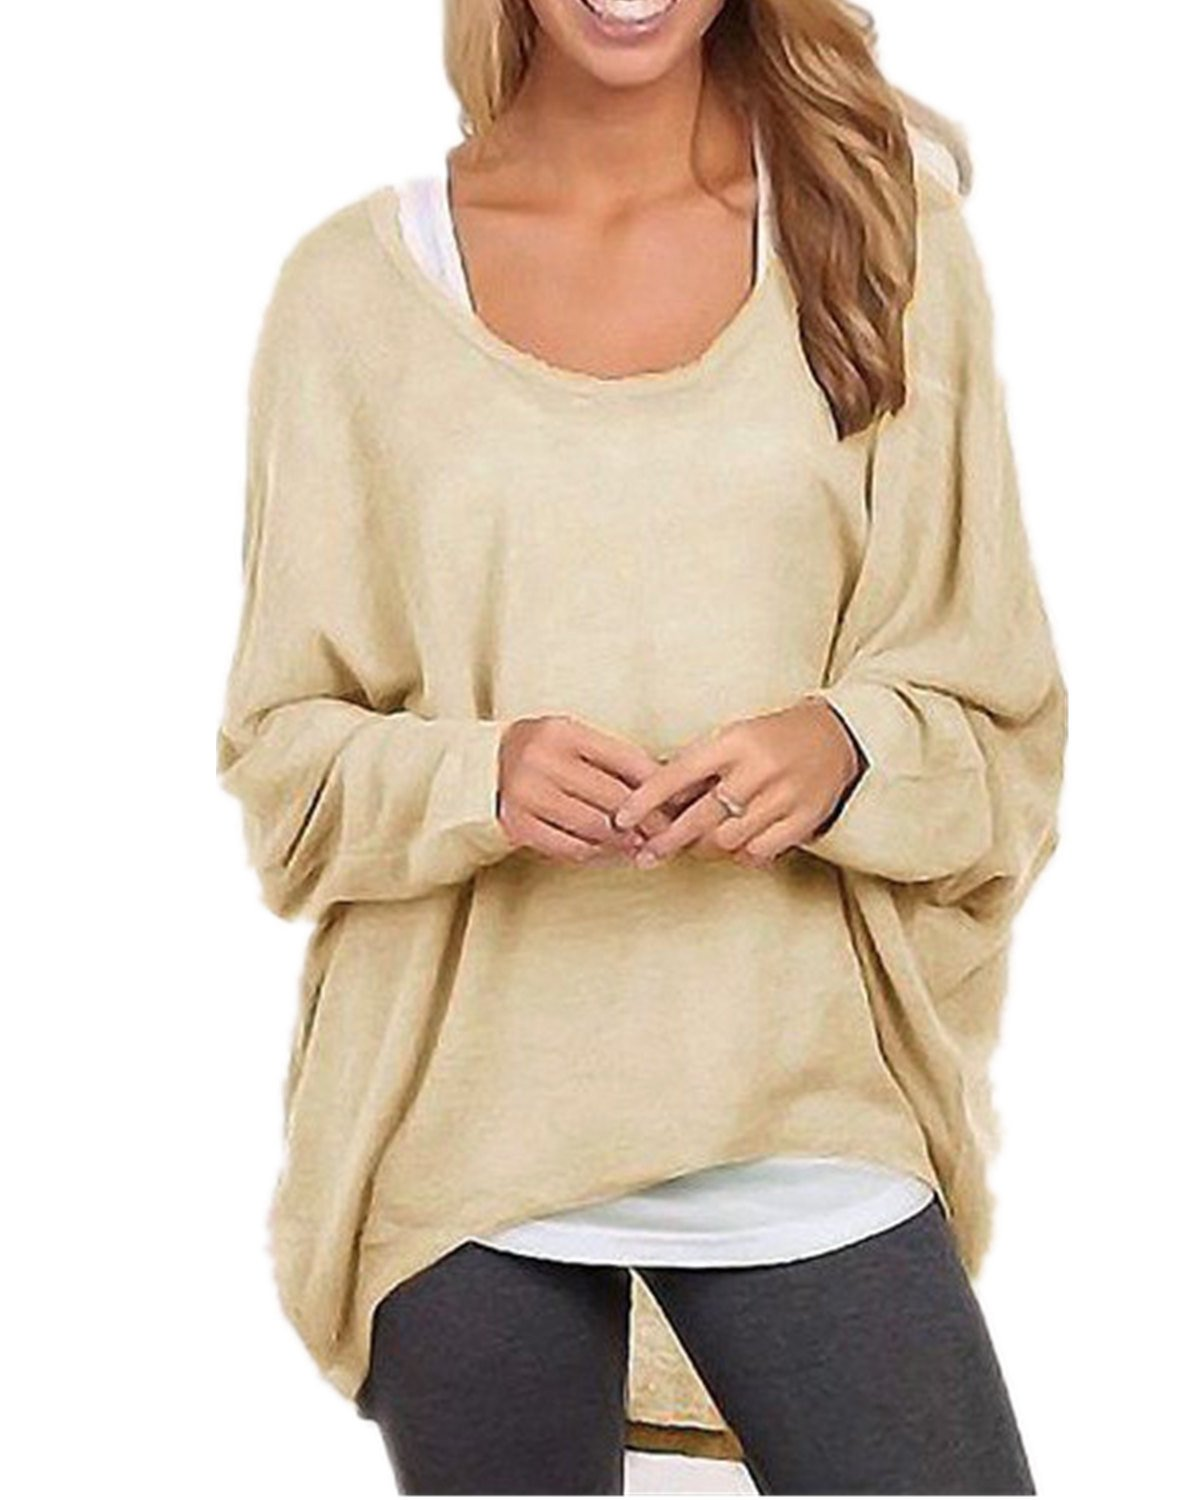 ZANZEA Women's Long Batwing Sleeve Loose Oversize Pullover Sweater Top Blouse Beige US 6/Tag Size S